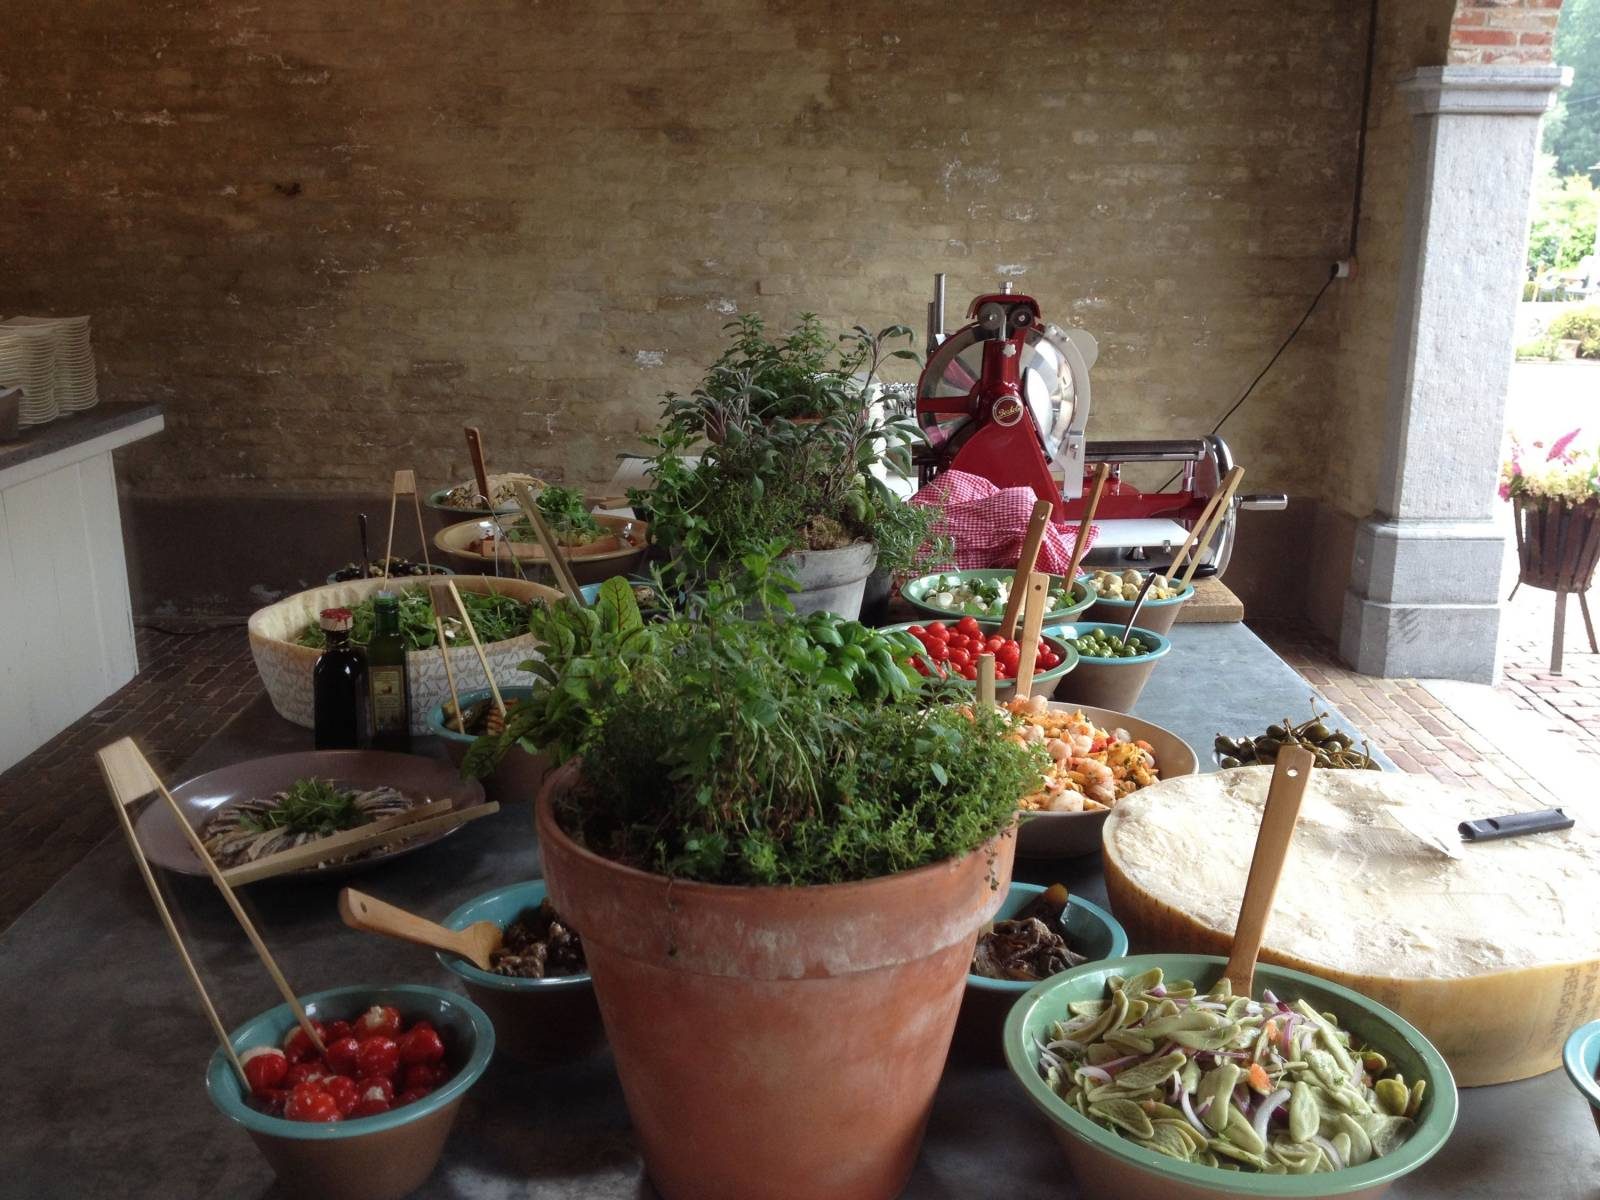 Hendrickx feesten - Catering - Traiteur - Cateraar - House of Weddings - 3